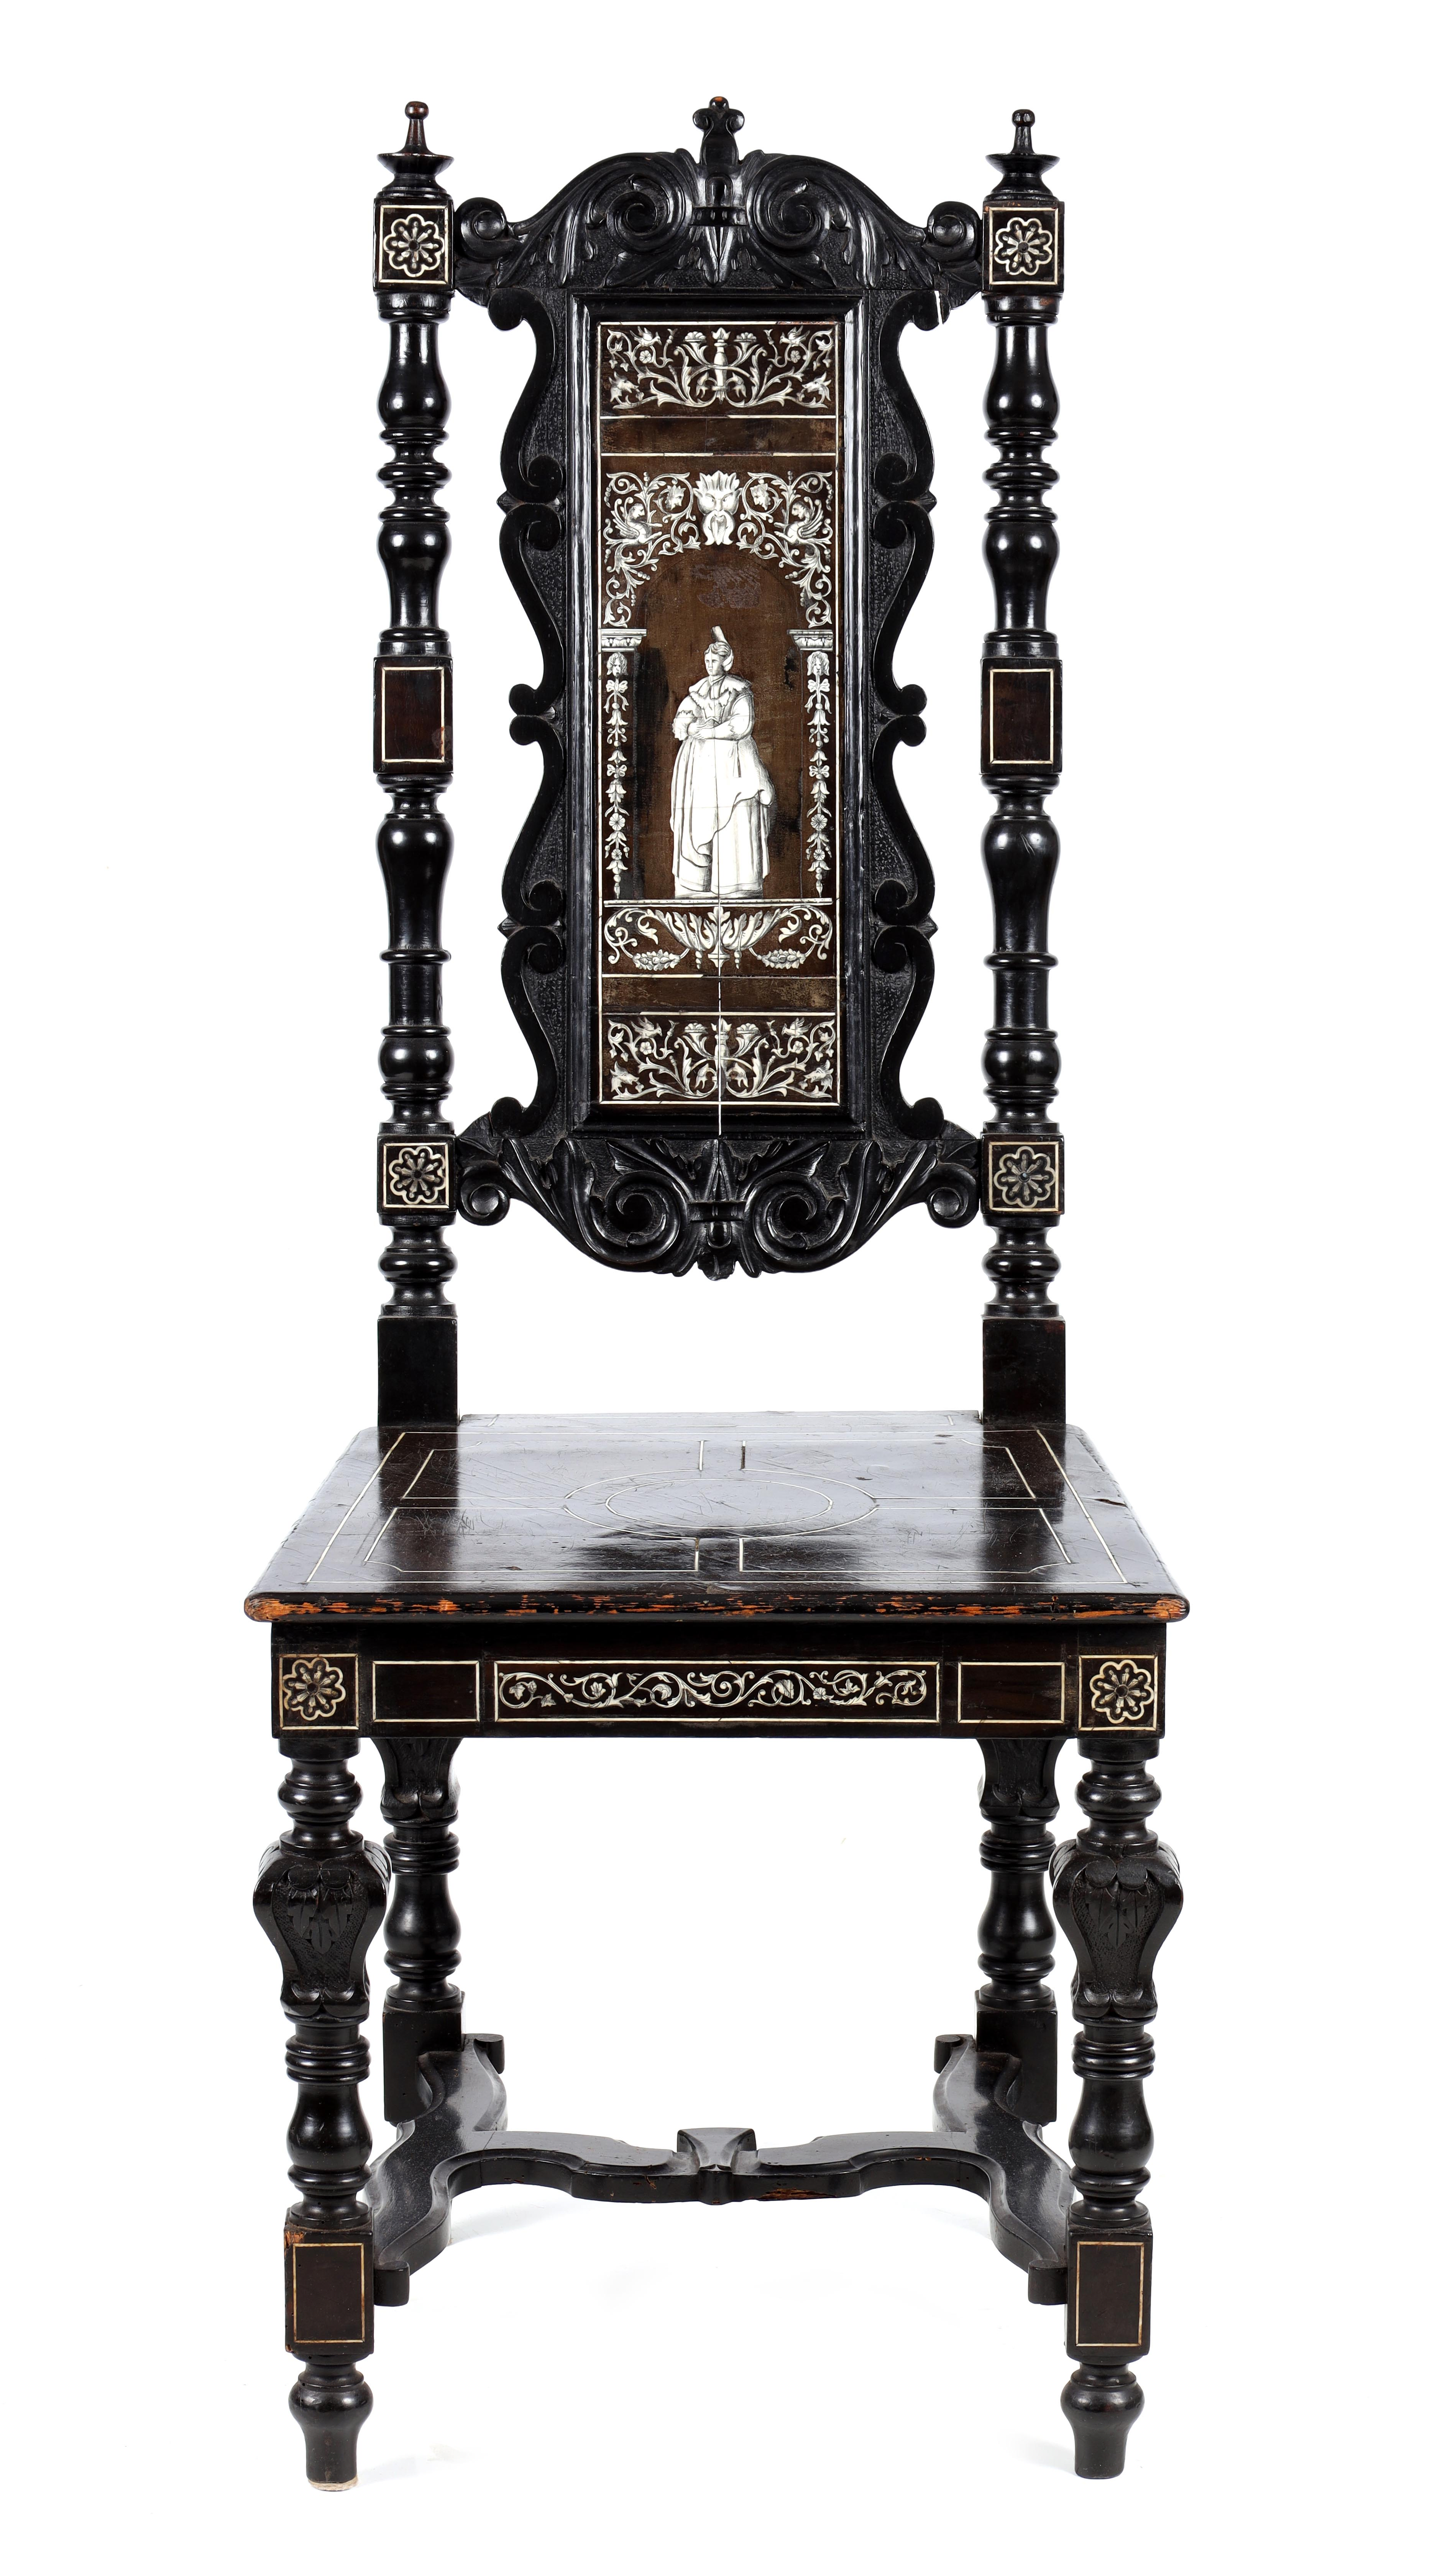 A PAIR OF LATE 19TH CENTURY EBONISED AND BONE INLAID ITALIAN SIDE CHAIRS with finely inlaid - Image 2 of 6